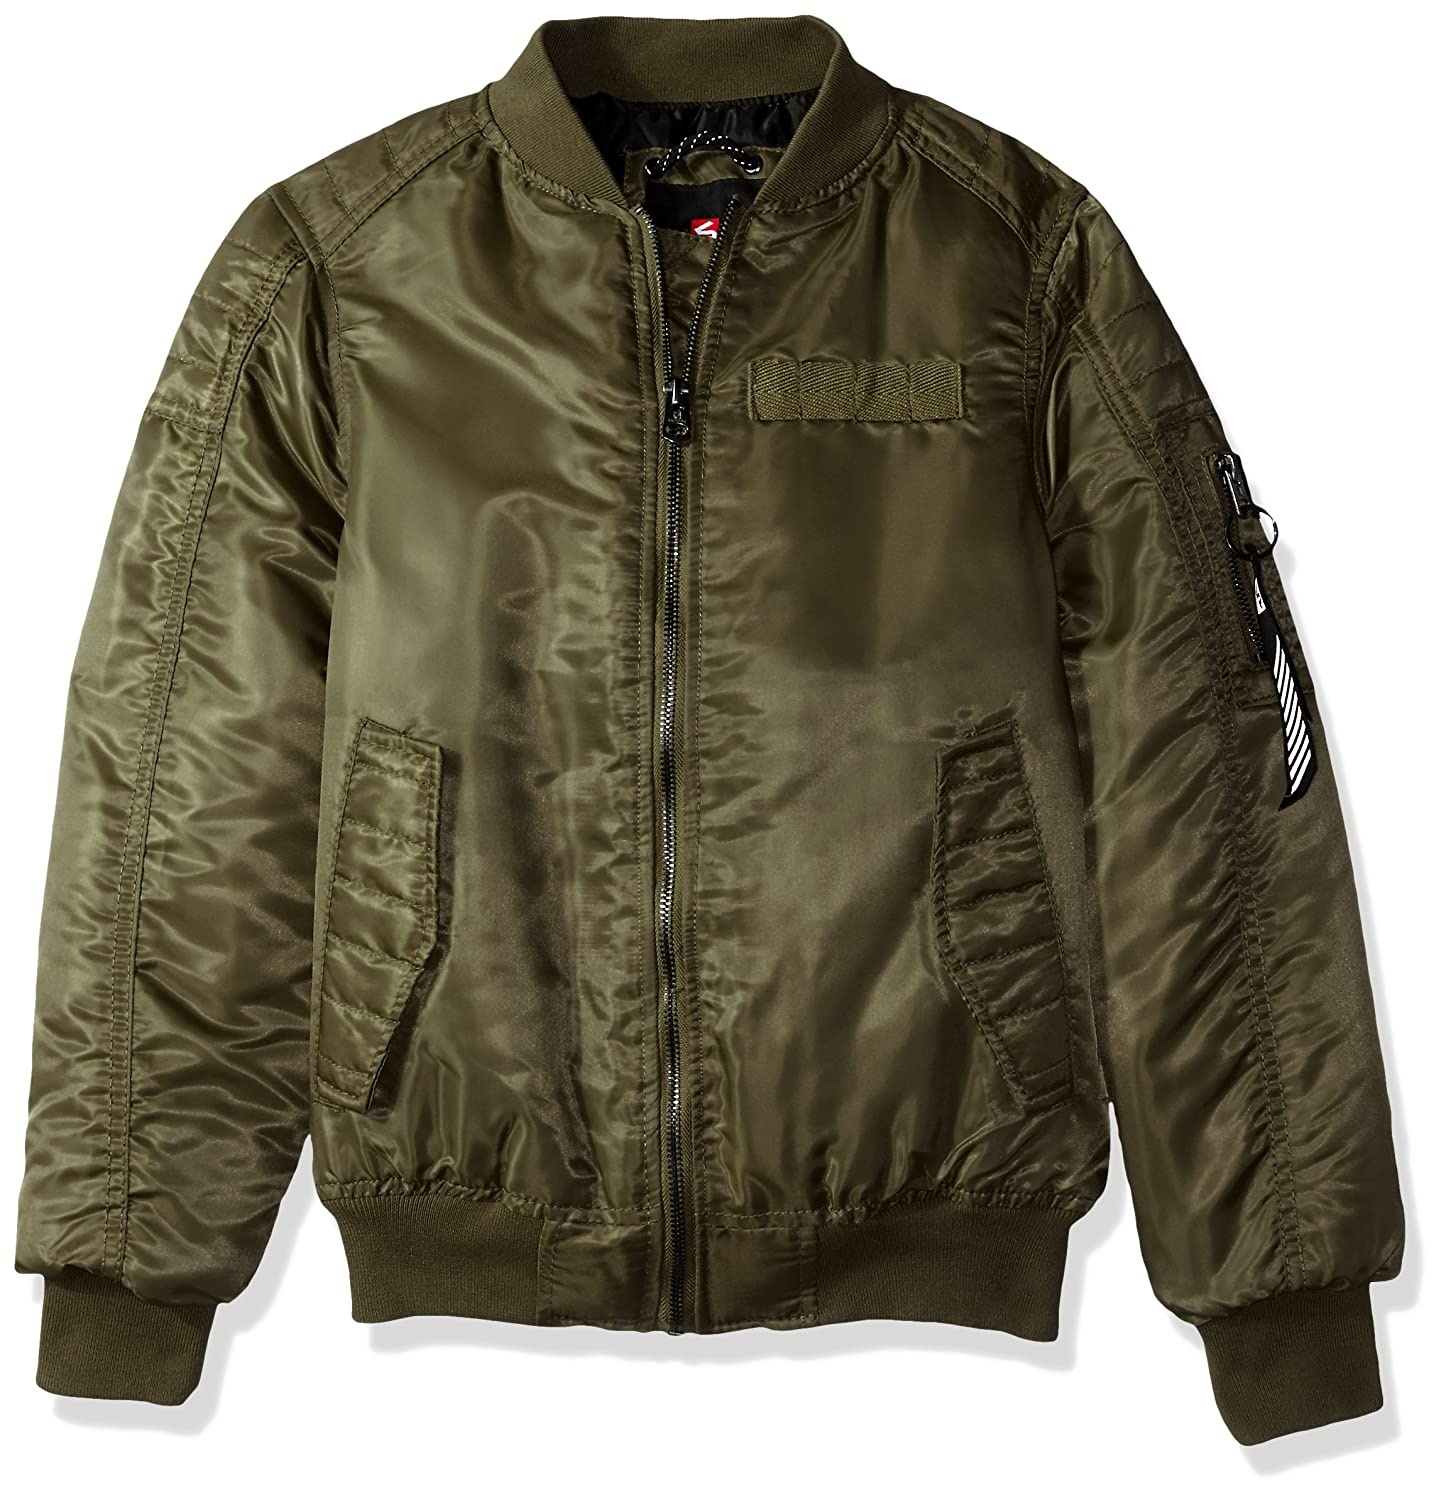 Southpole Boys' Big Ma-1 Bomber Flight Jacket with Biker Detail